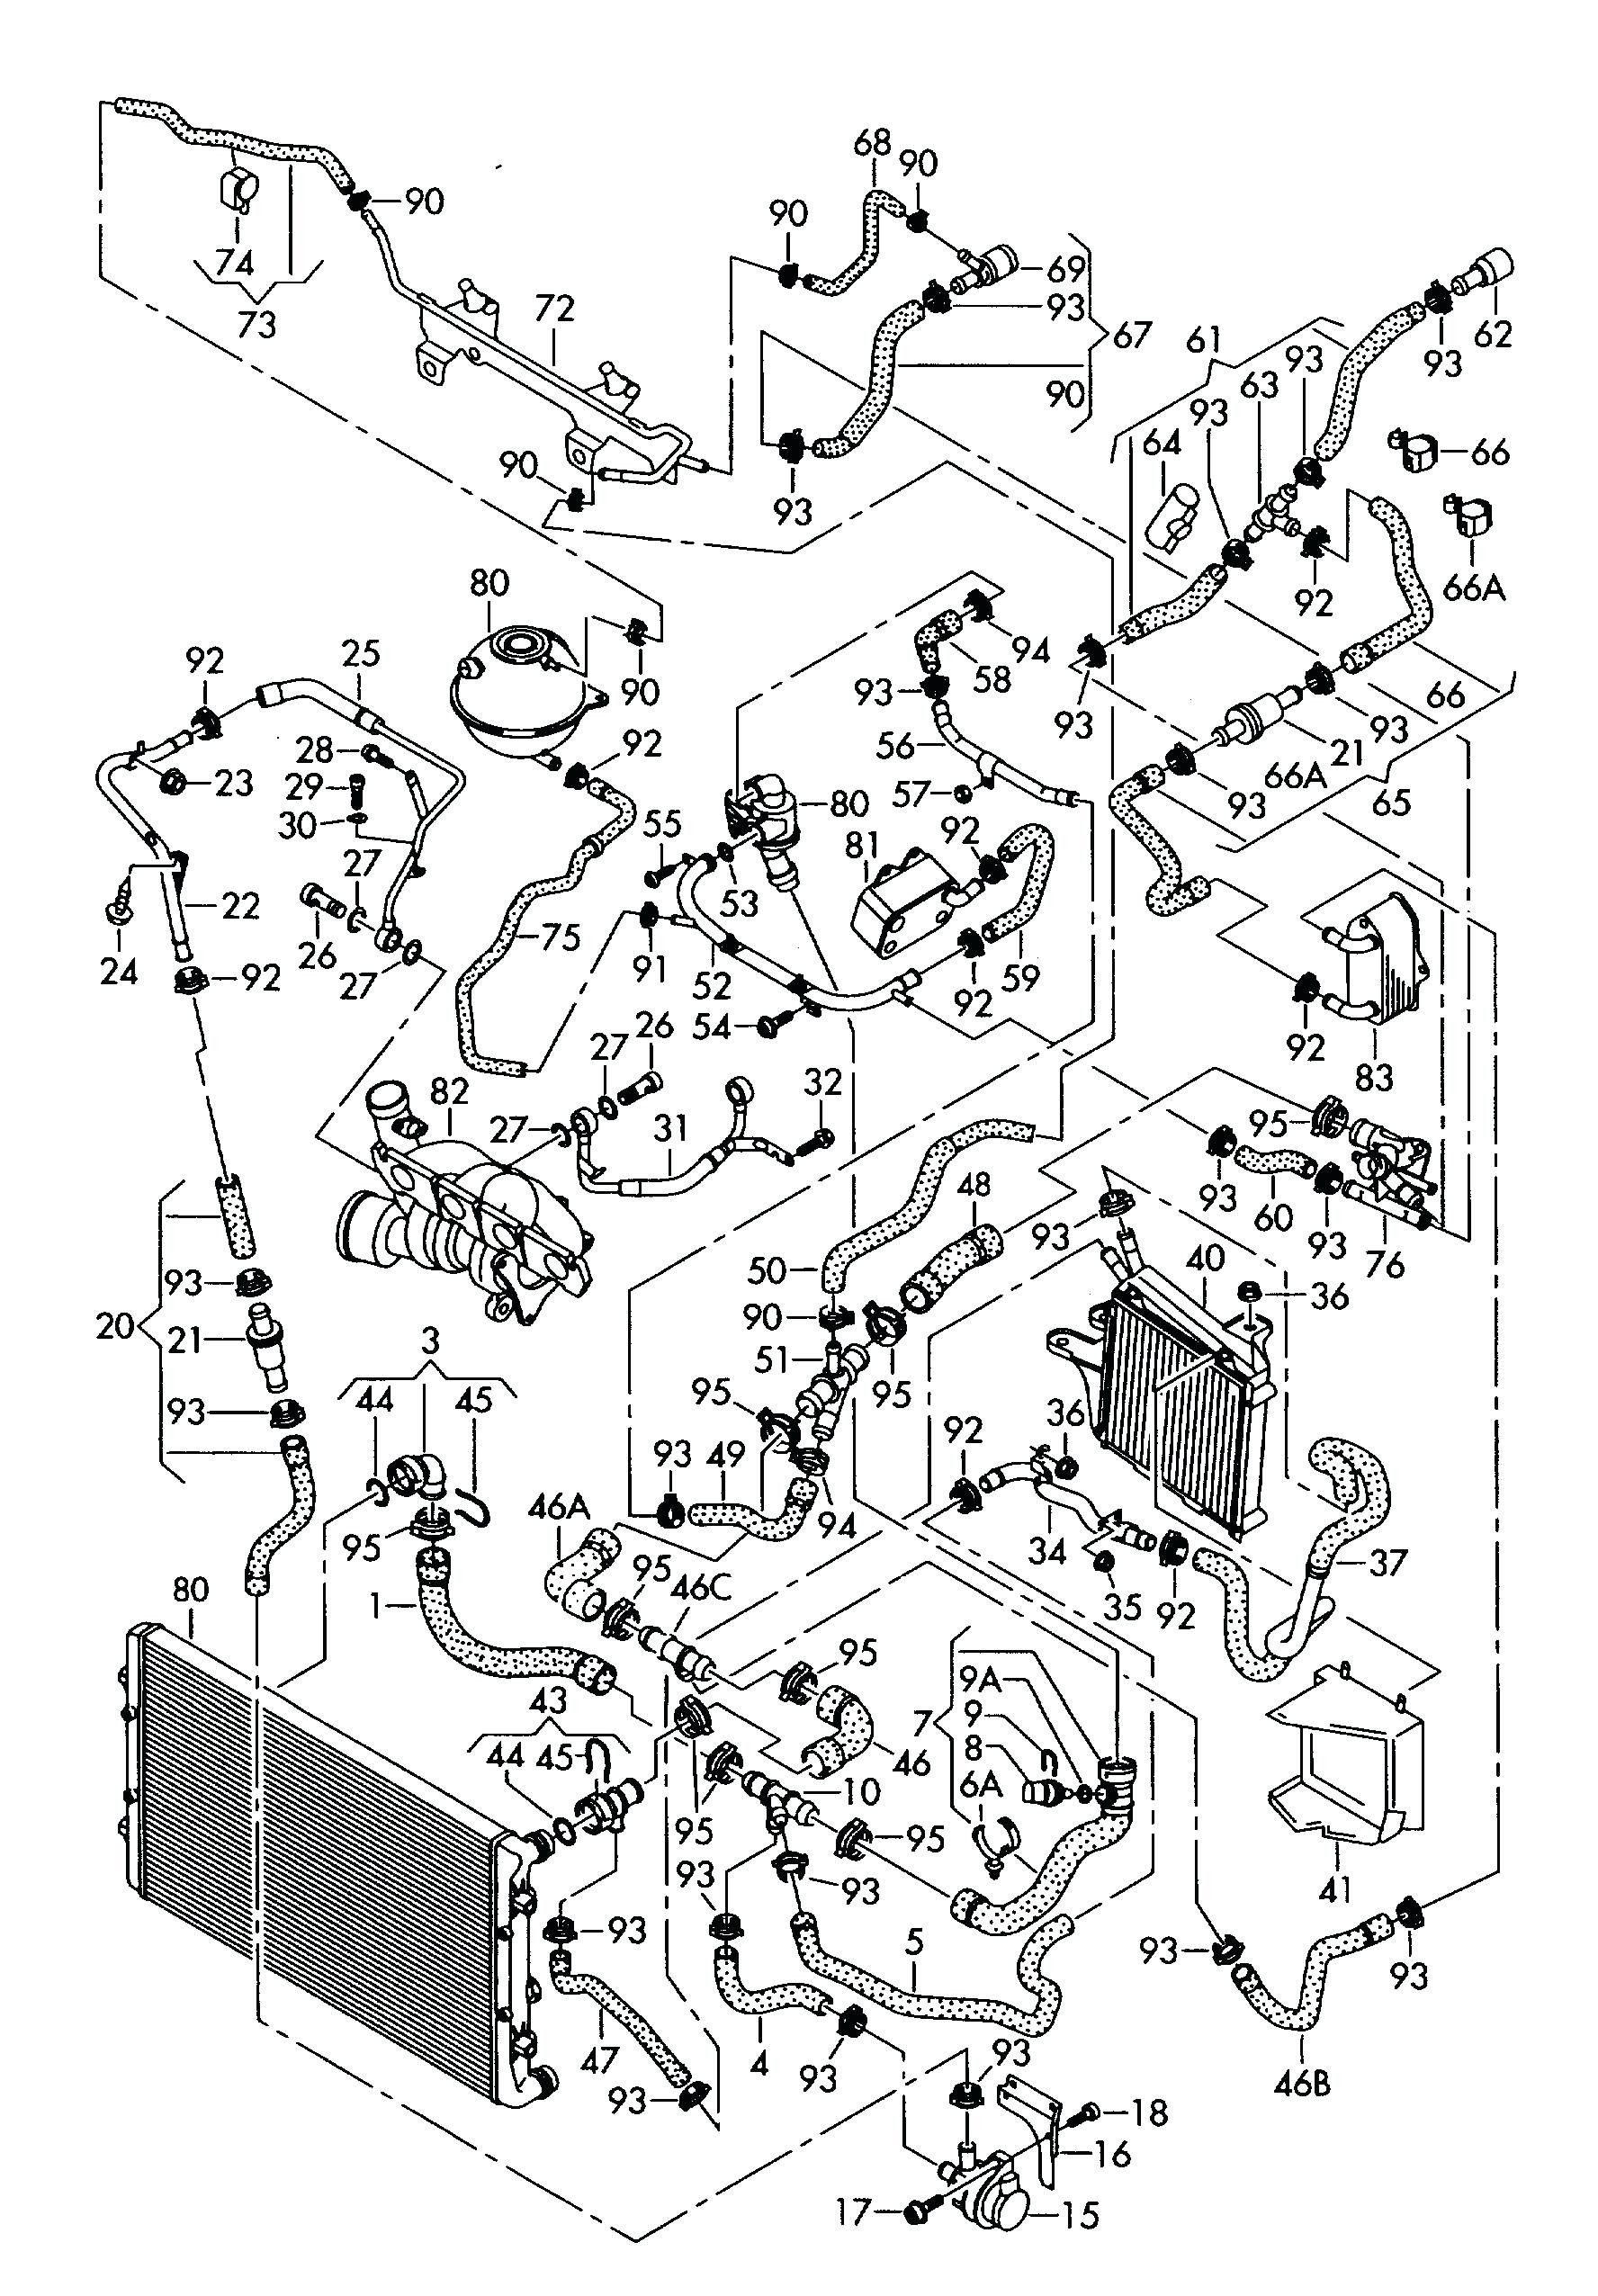 vw touareg wiring diagram two way switch for one lights engine 2008 polaris sportsman